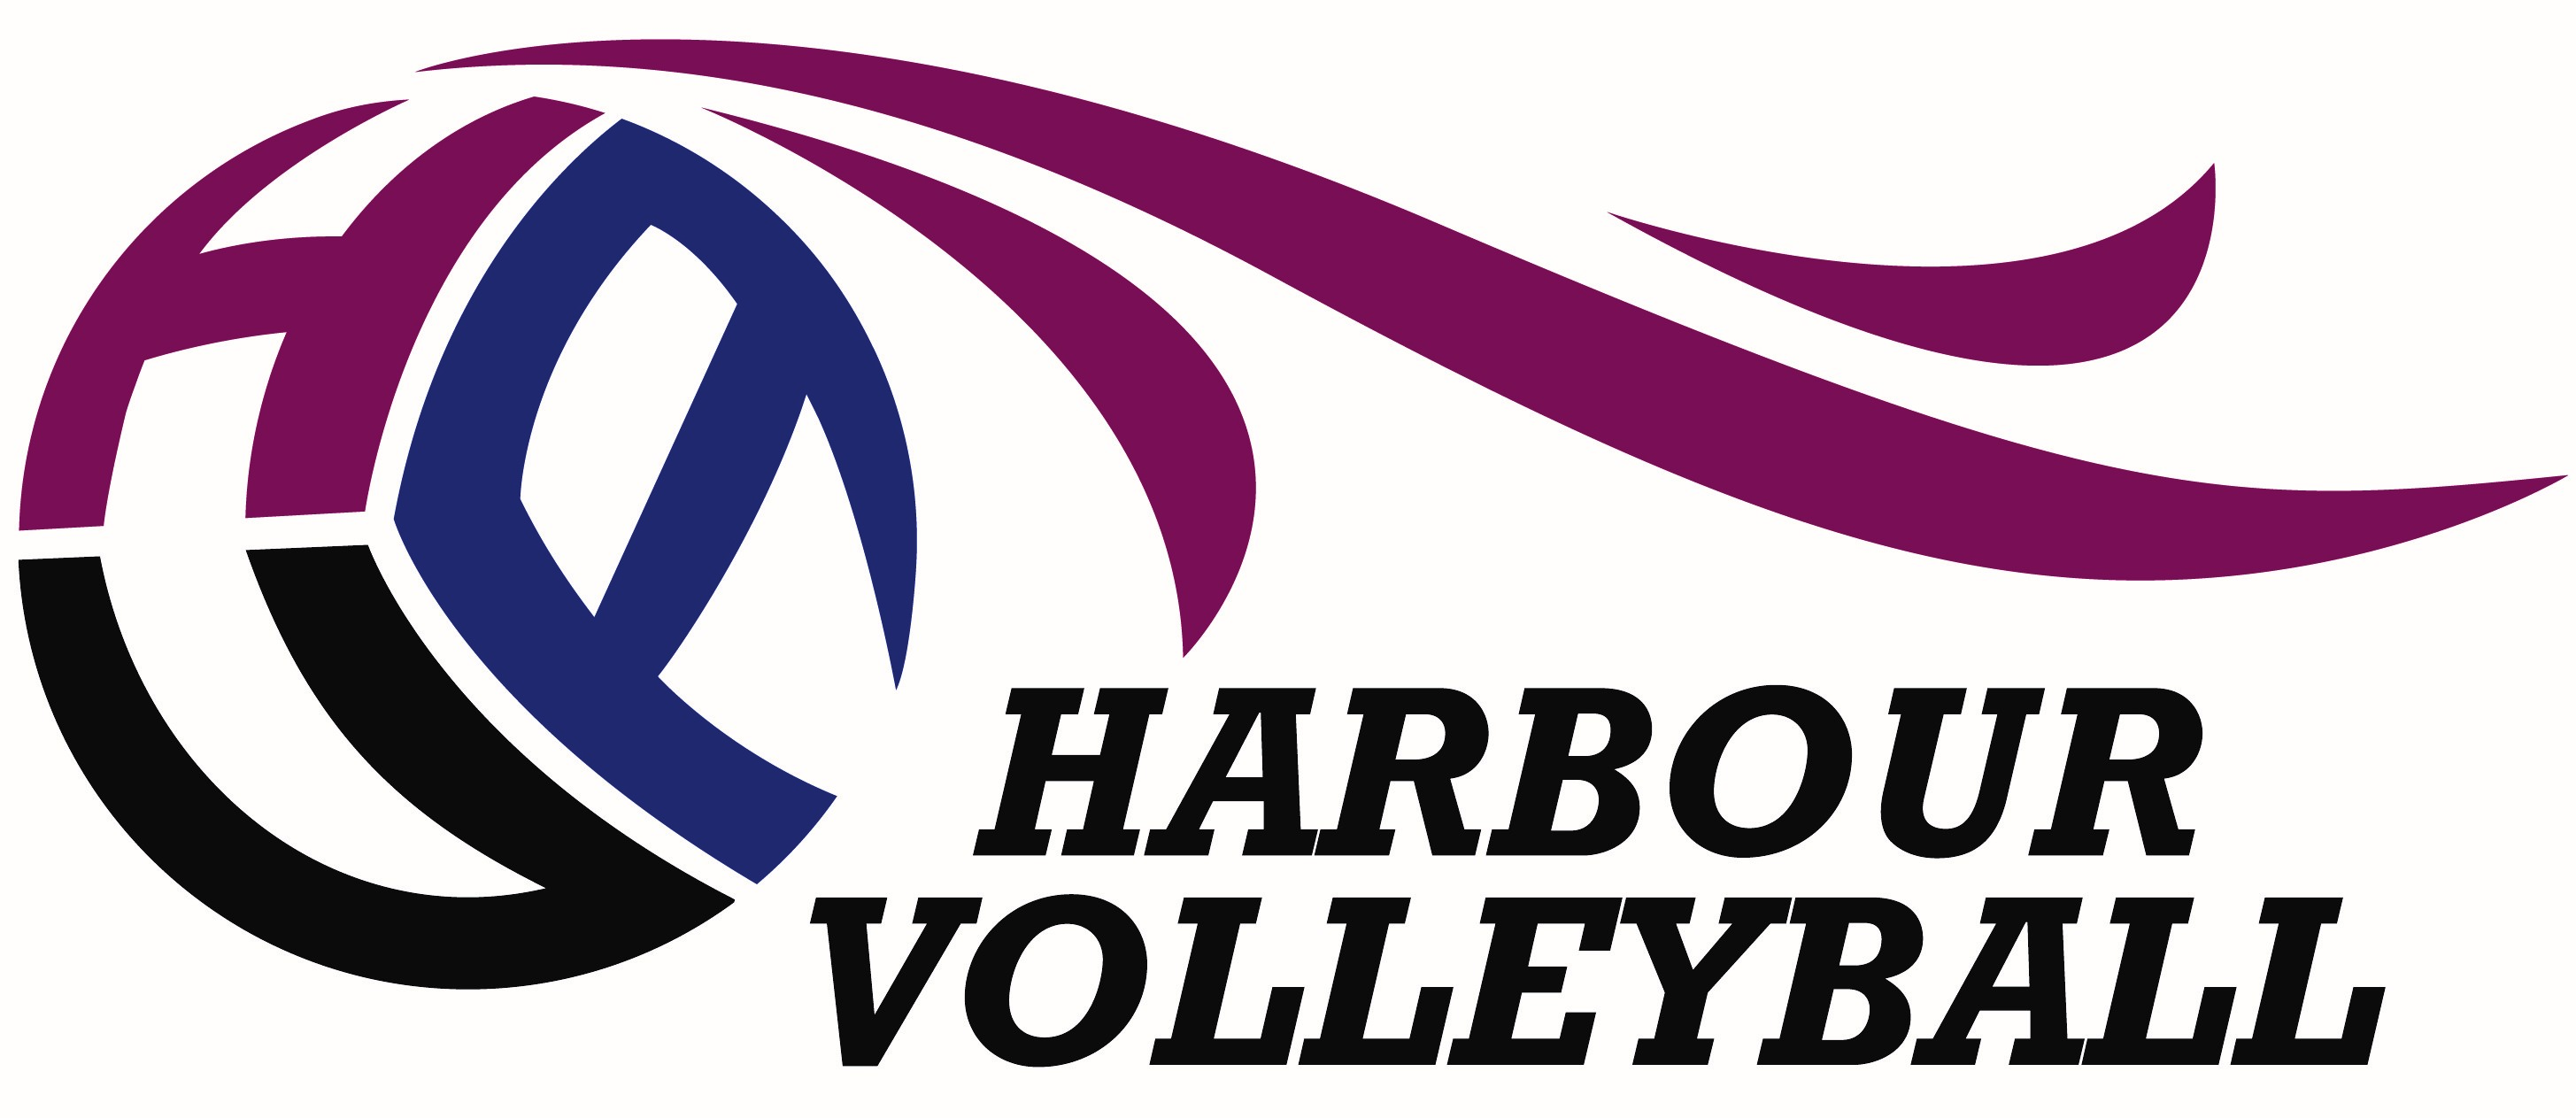 Harbour Volleyball Shop